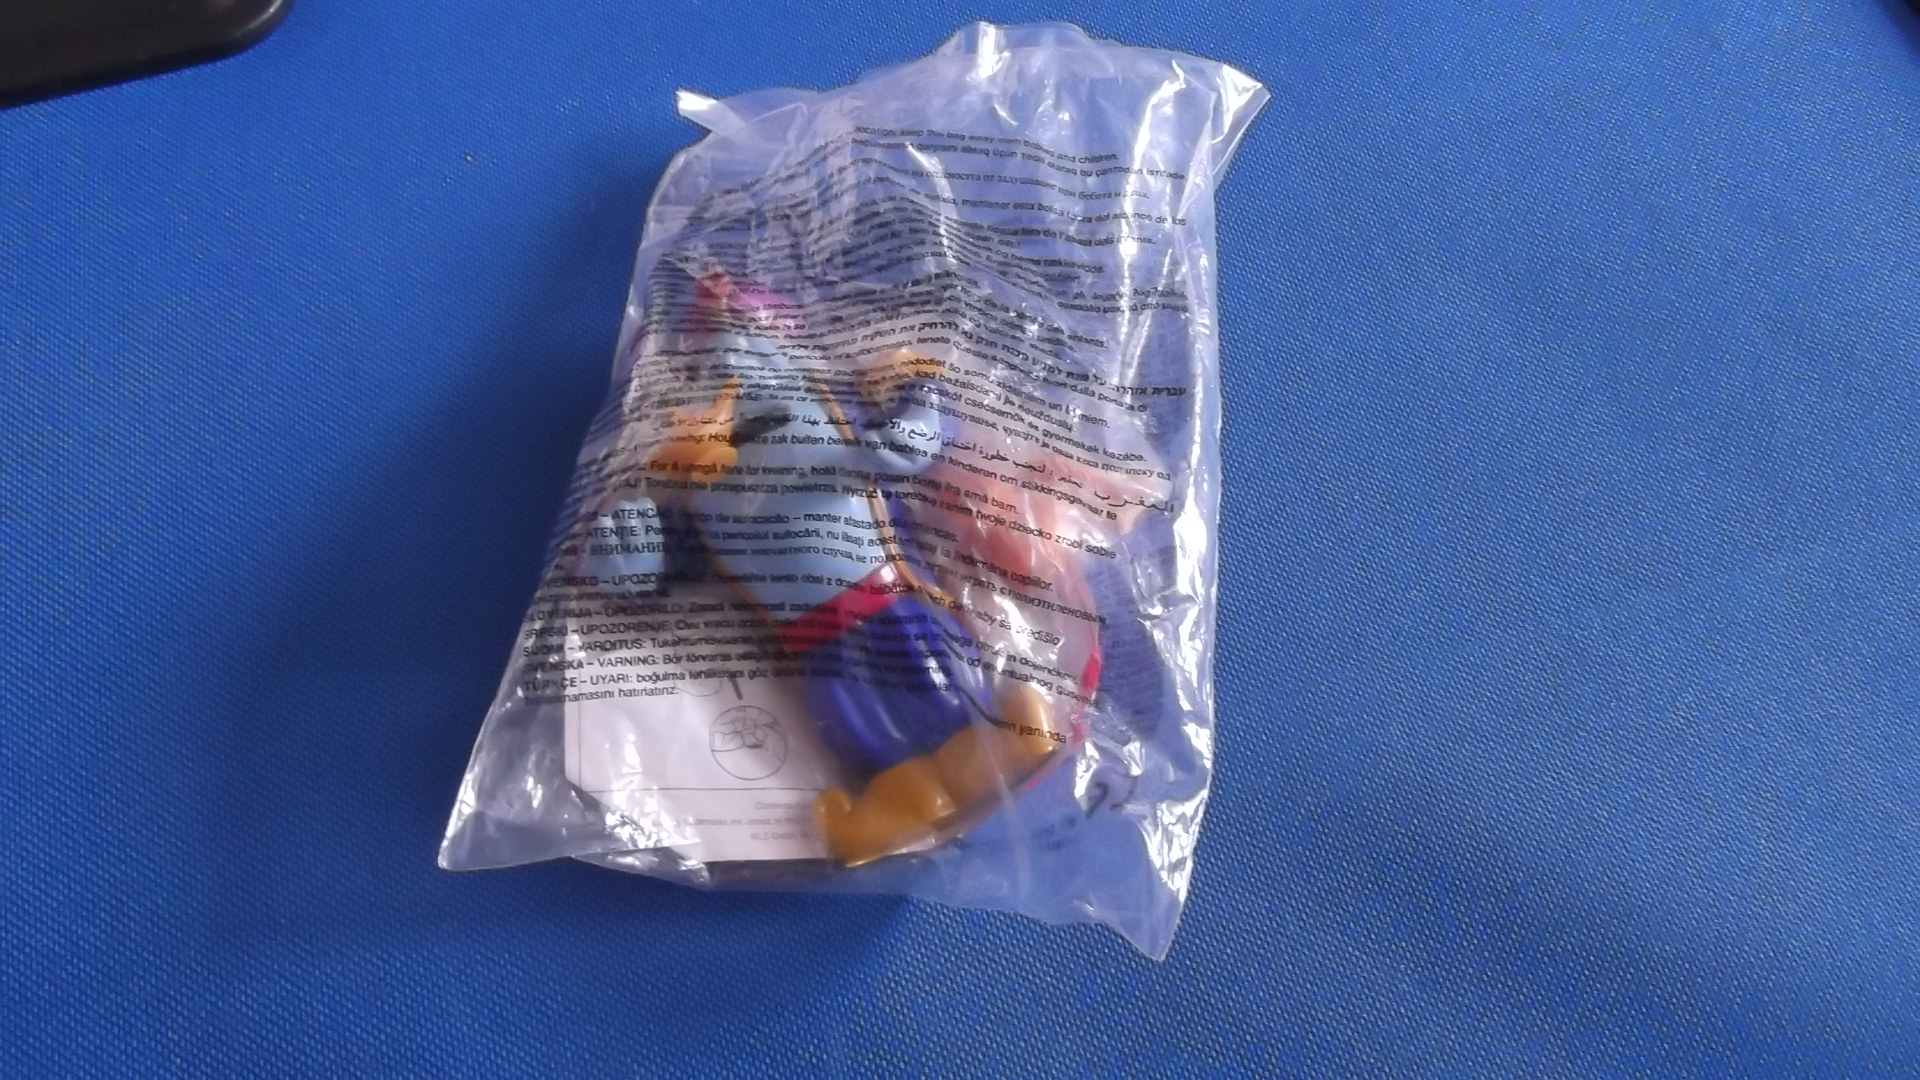 McDonalds Disneyland Paris Abu & Genie Toy From 2001 New